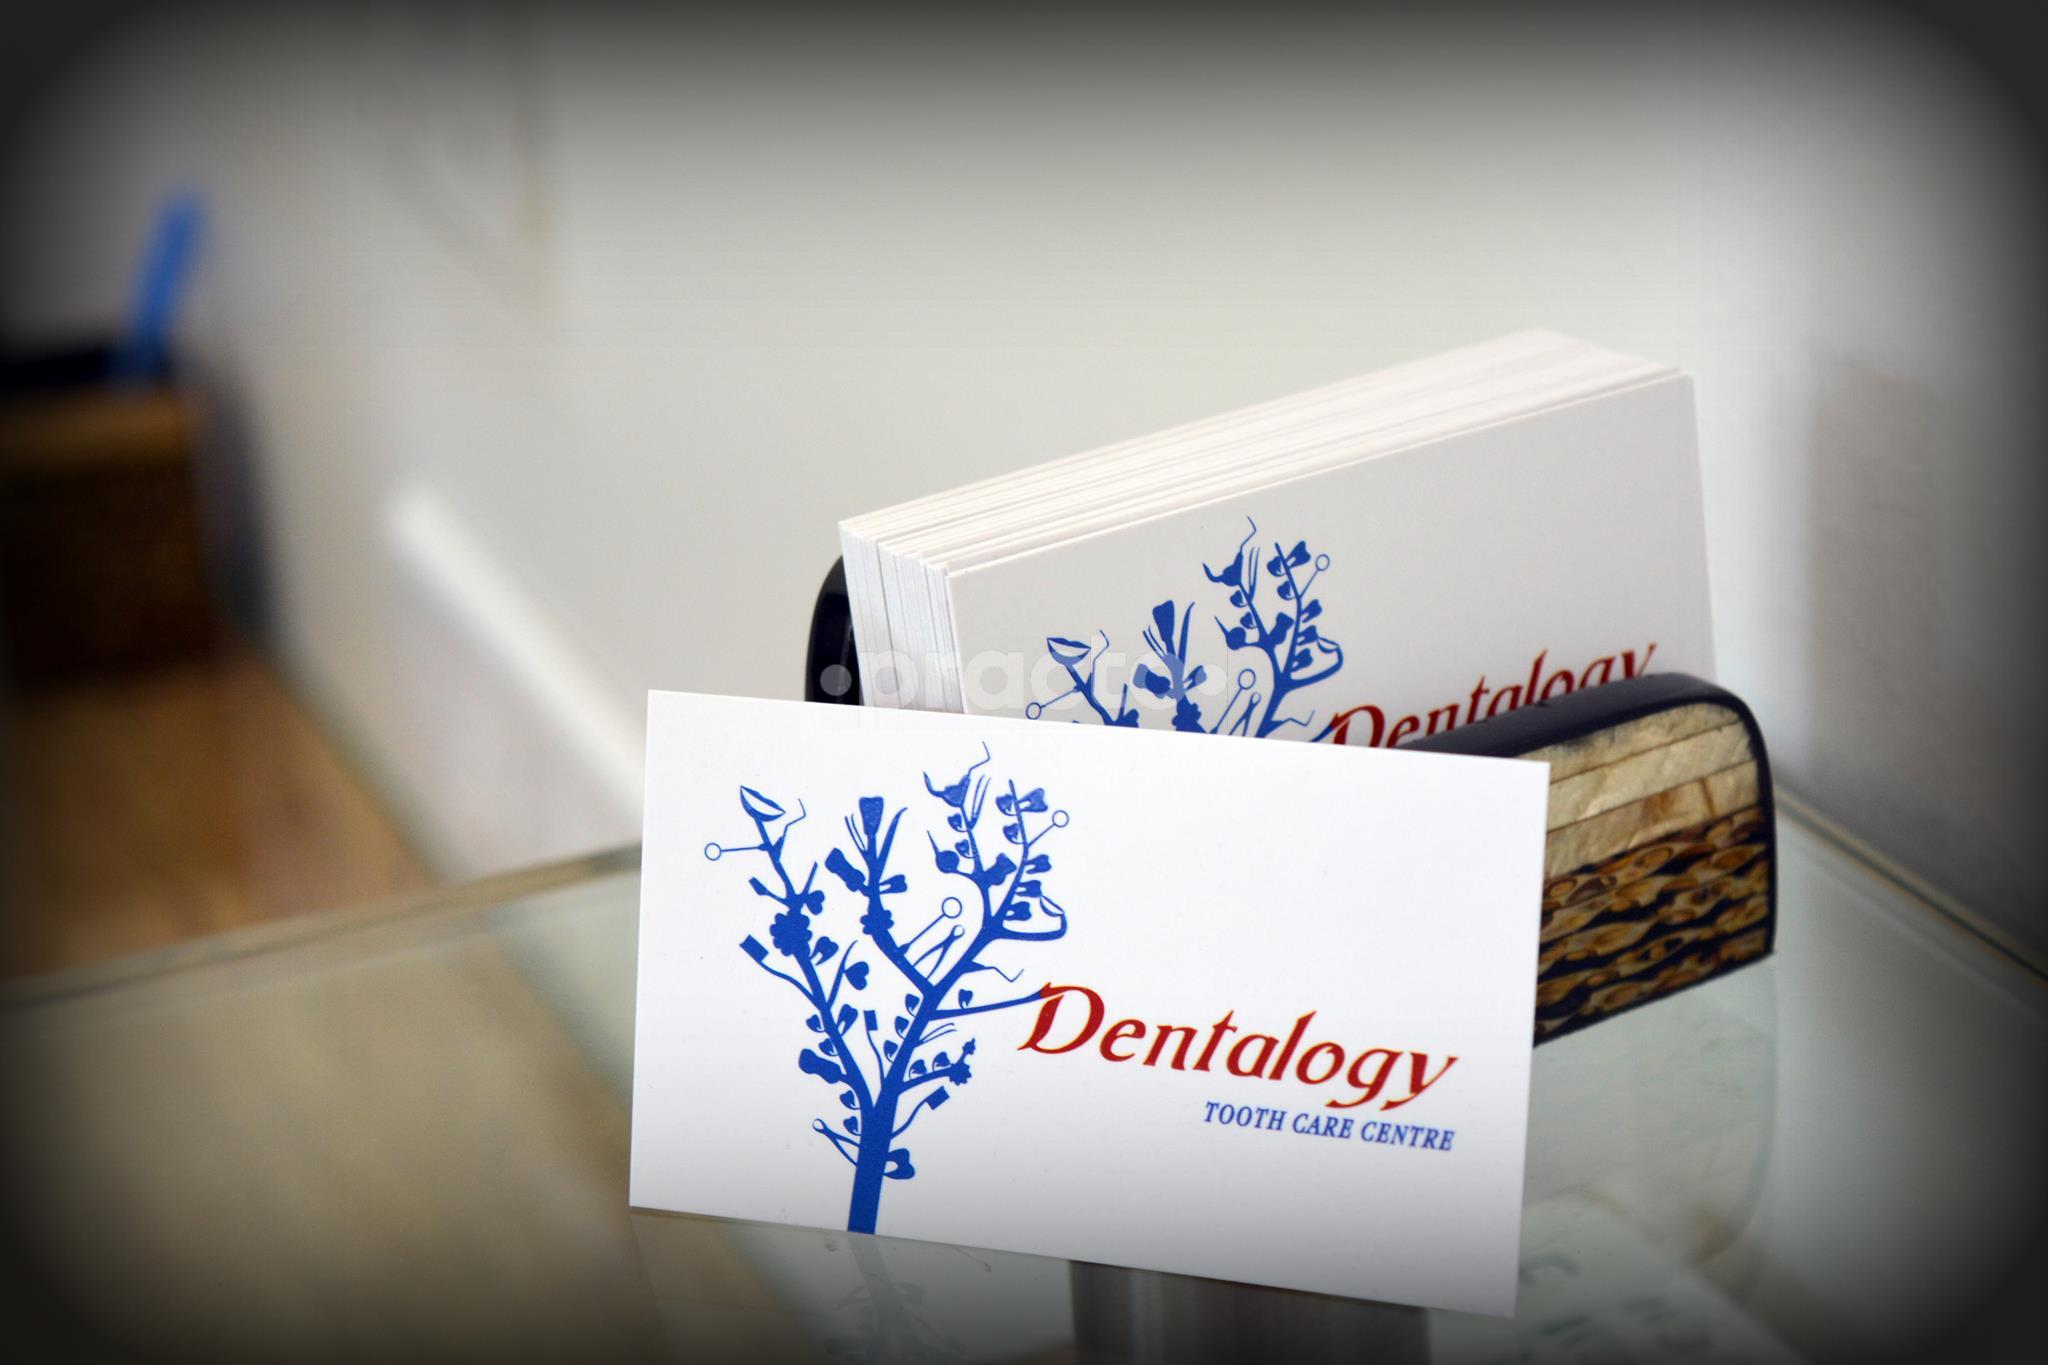 Dentalogy - Tooth Care Centre